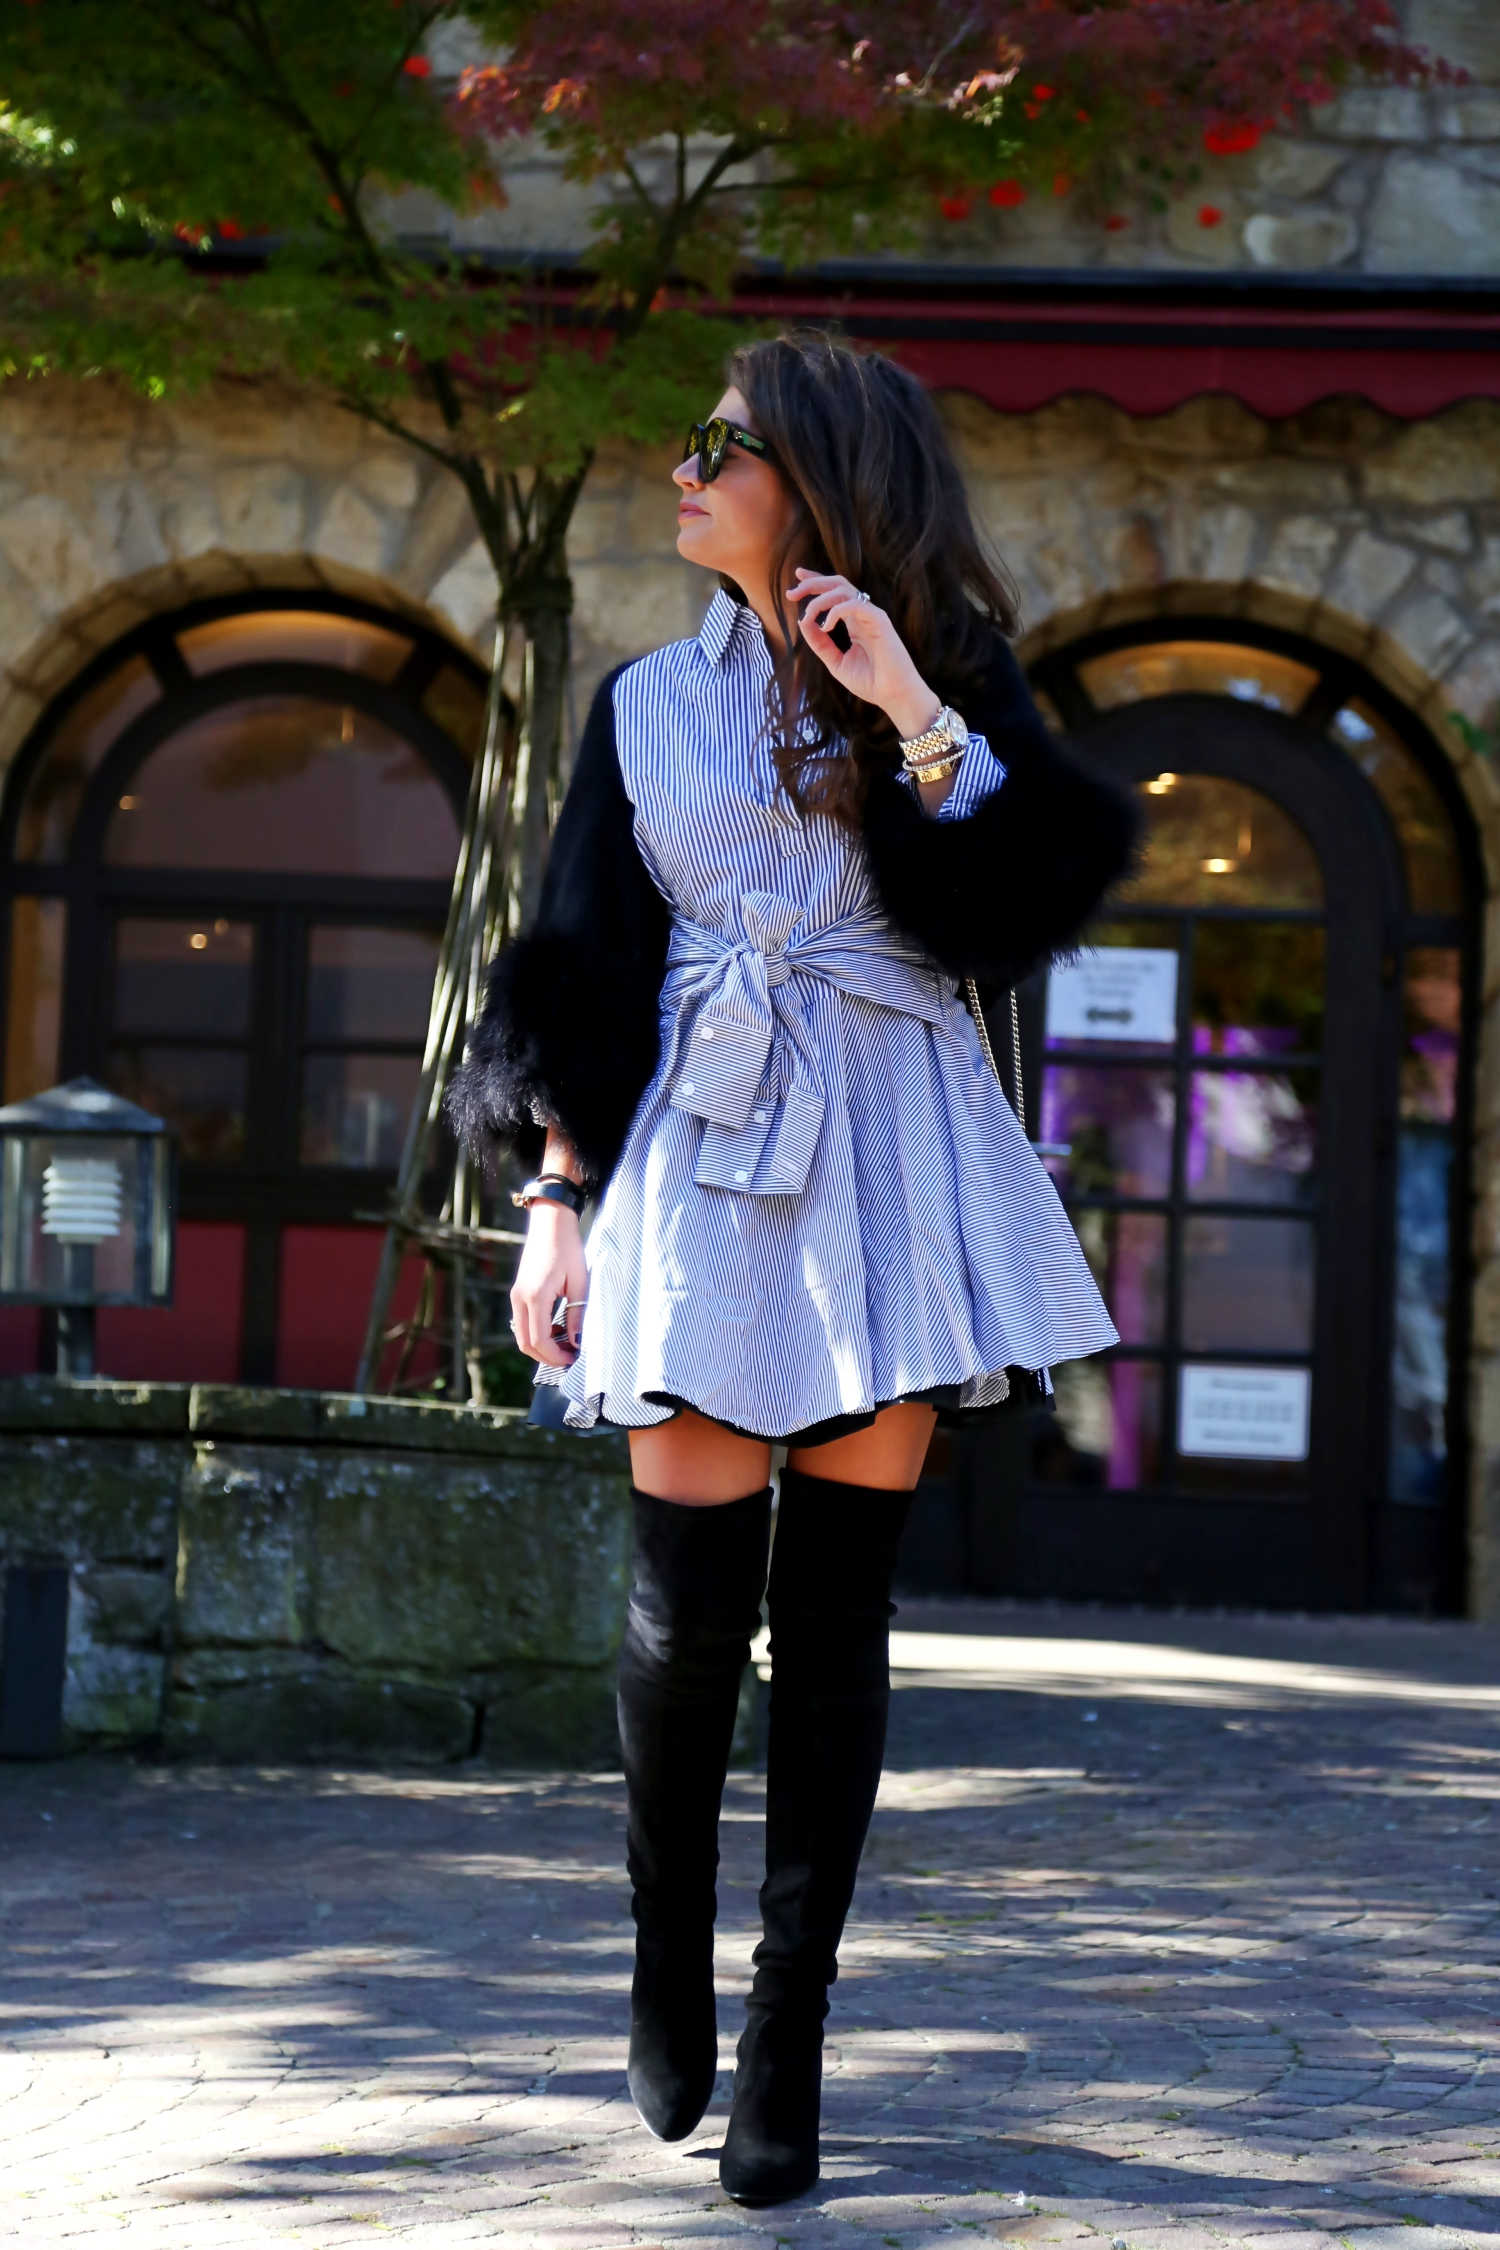 outfit-overknees-stripes-dress-leather-skirt-celine-sunglasses-fall-uniform